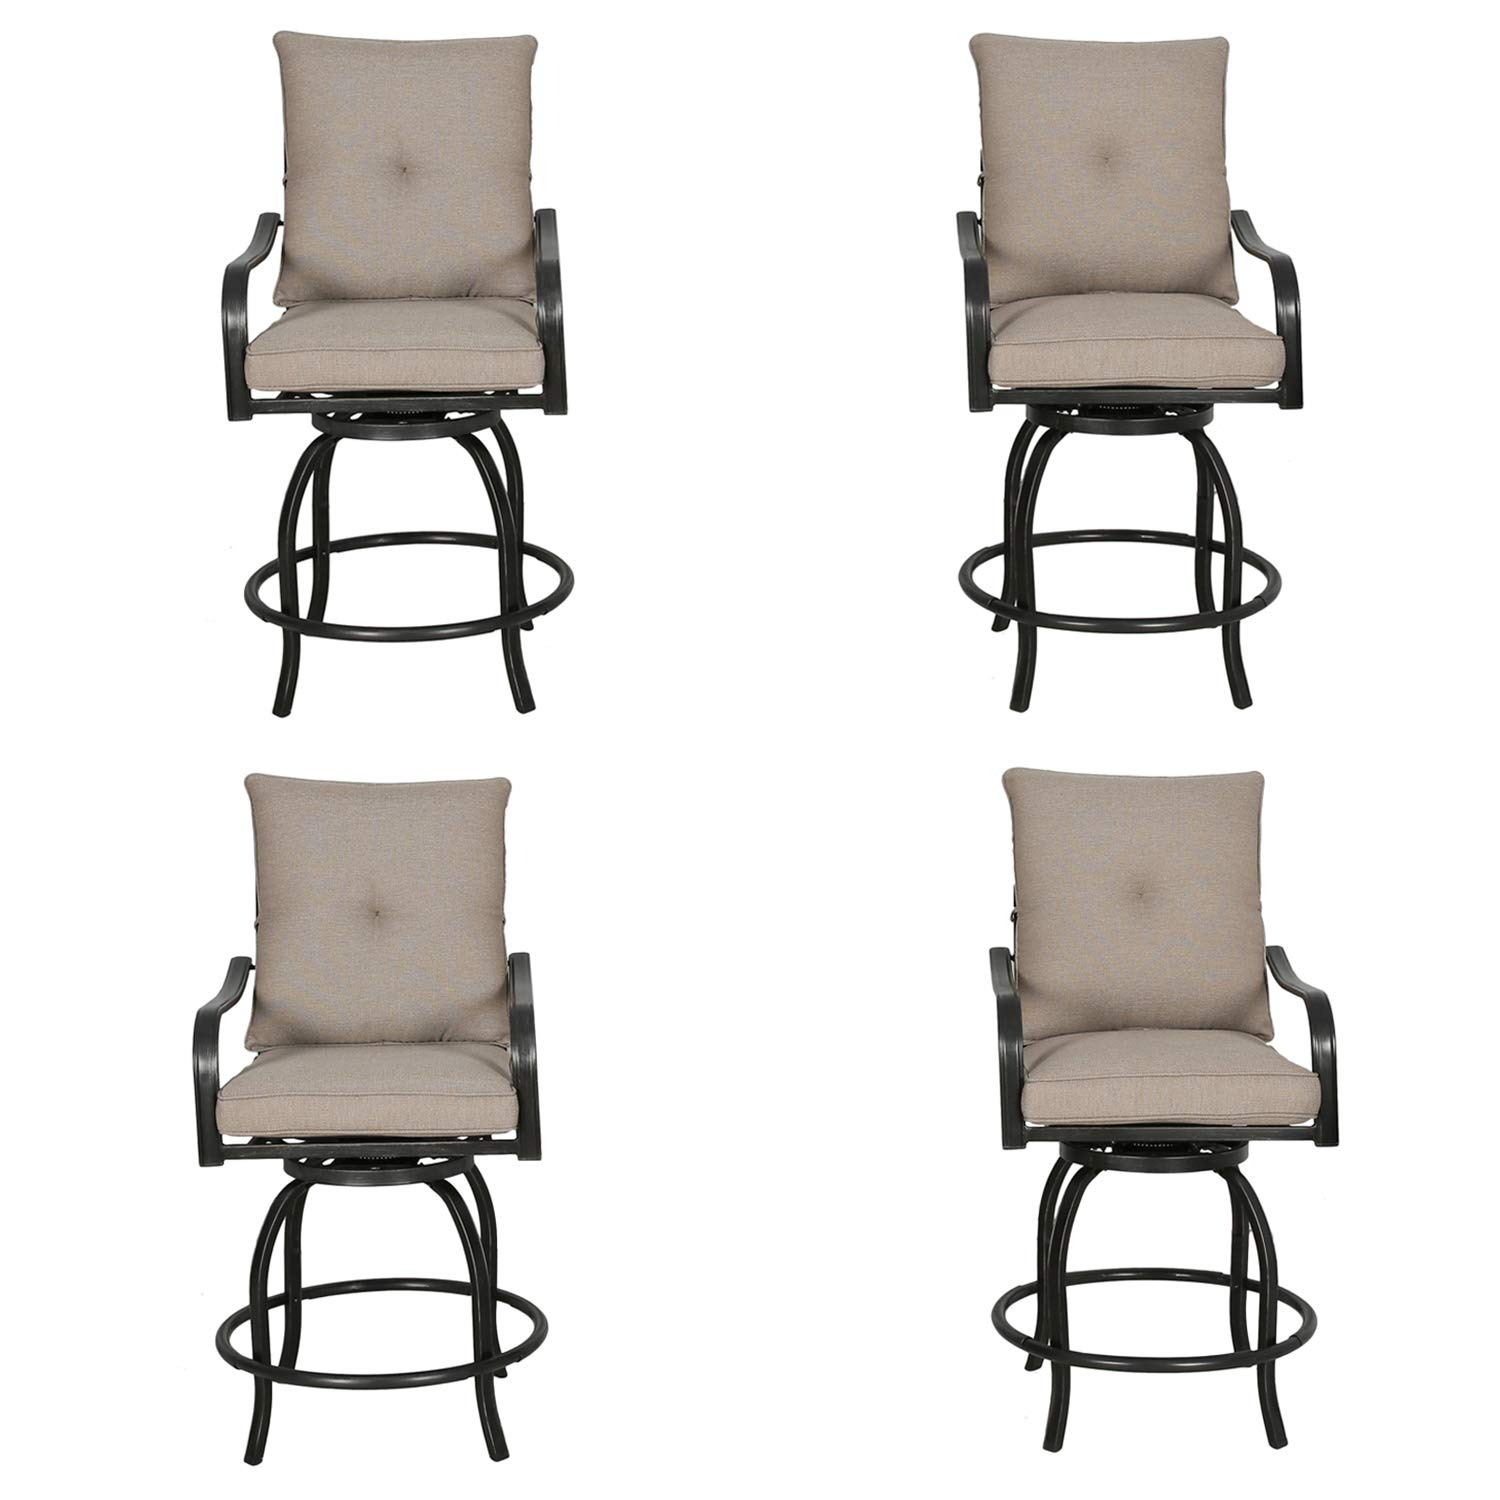 Iwicker 4 Piece Outdoor Swivel Bistro Bar Stool